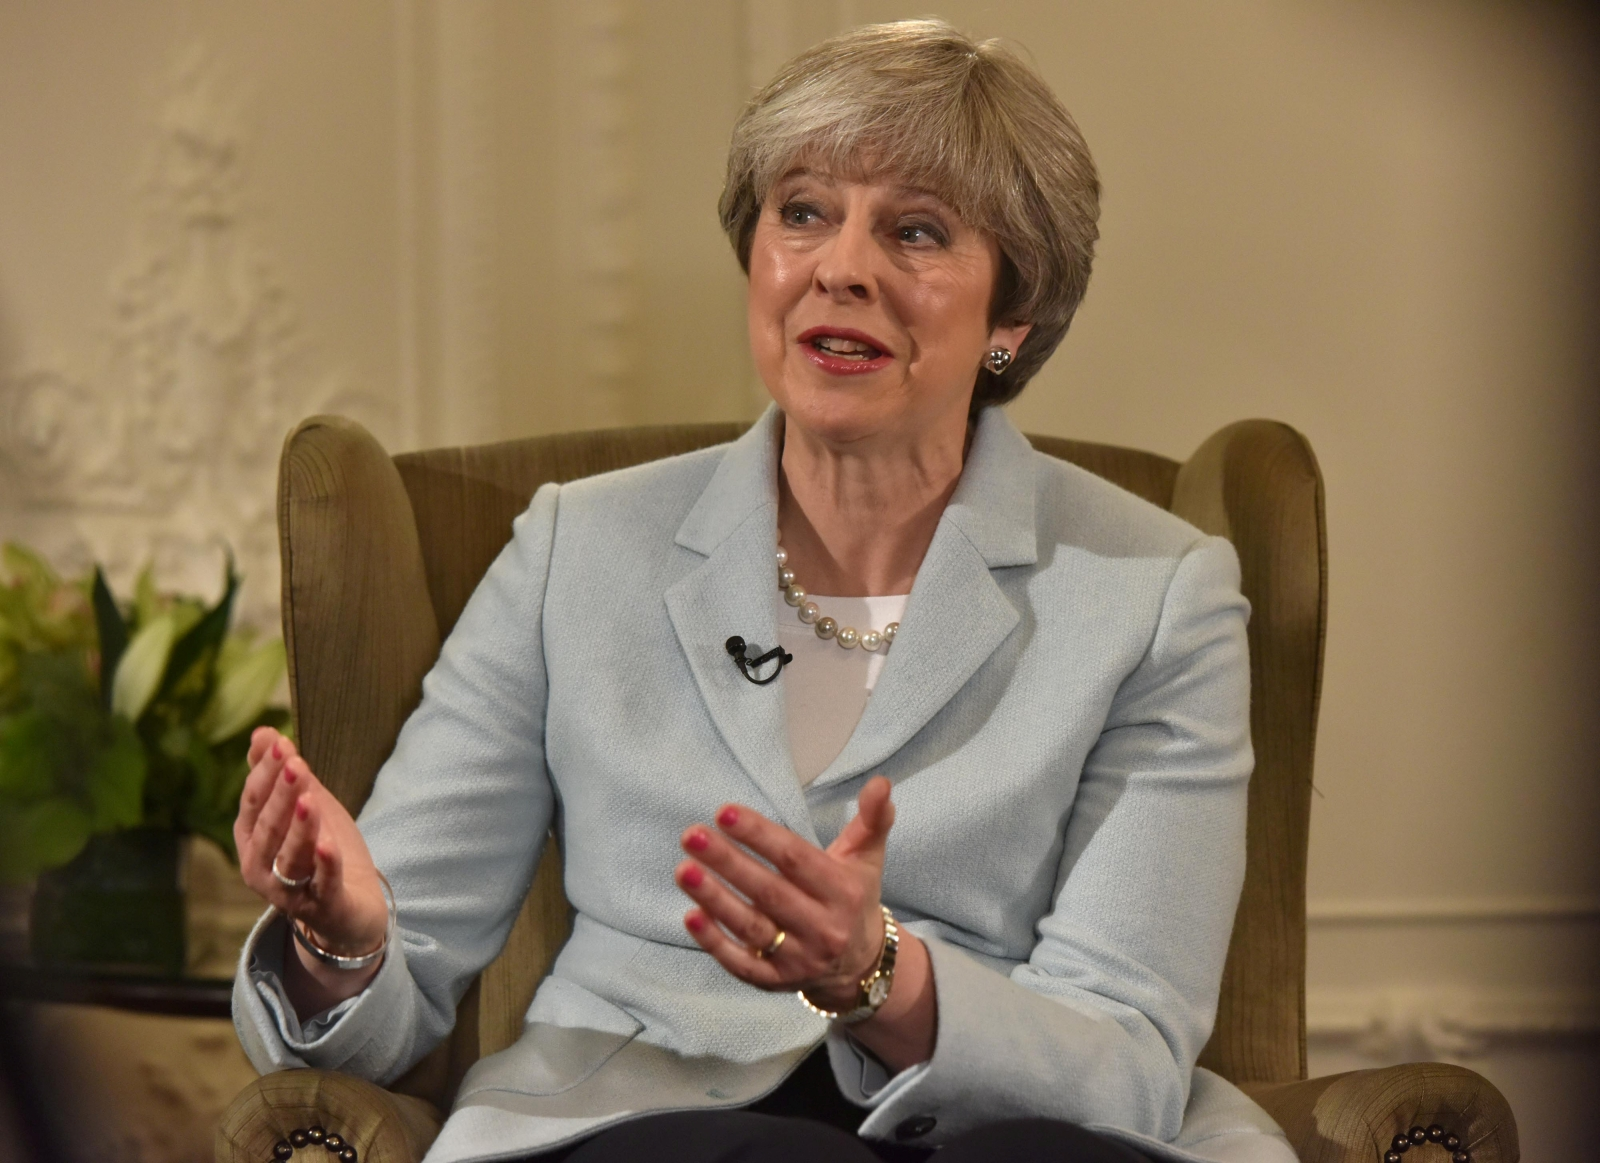 Cabinet reshuffle: Theresa May's show of strength - or limitations?